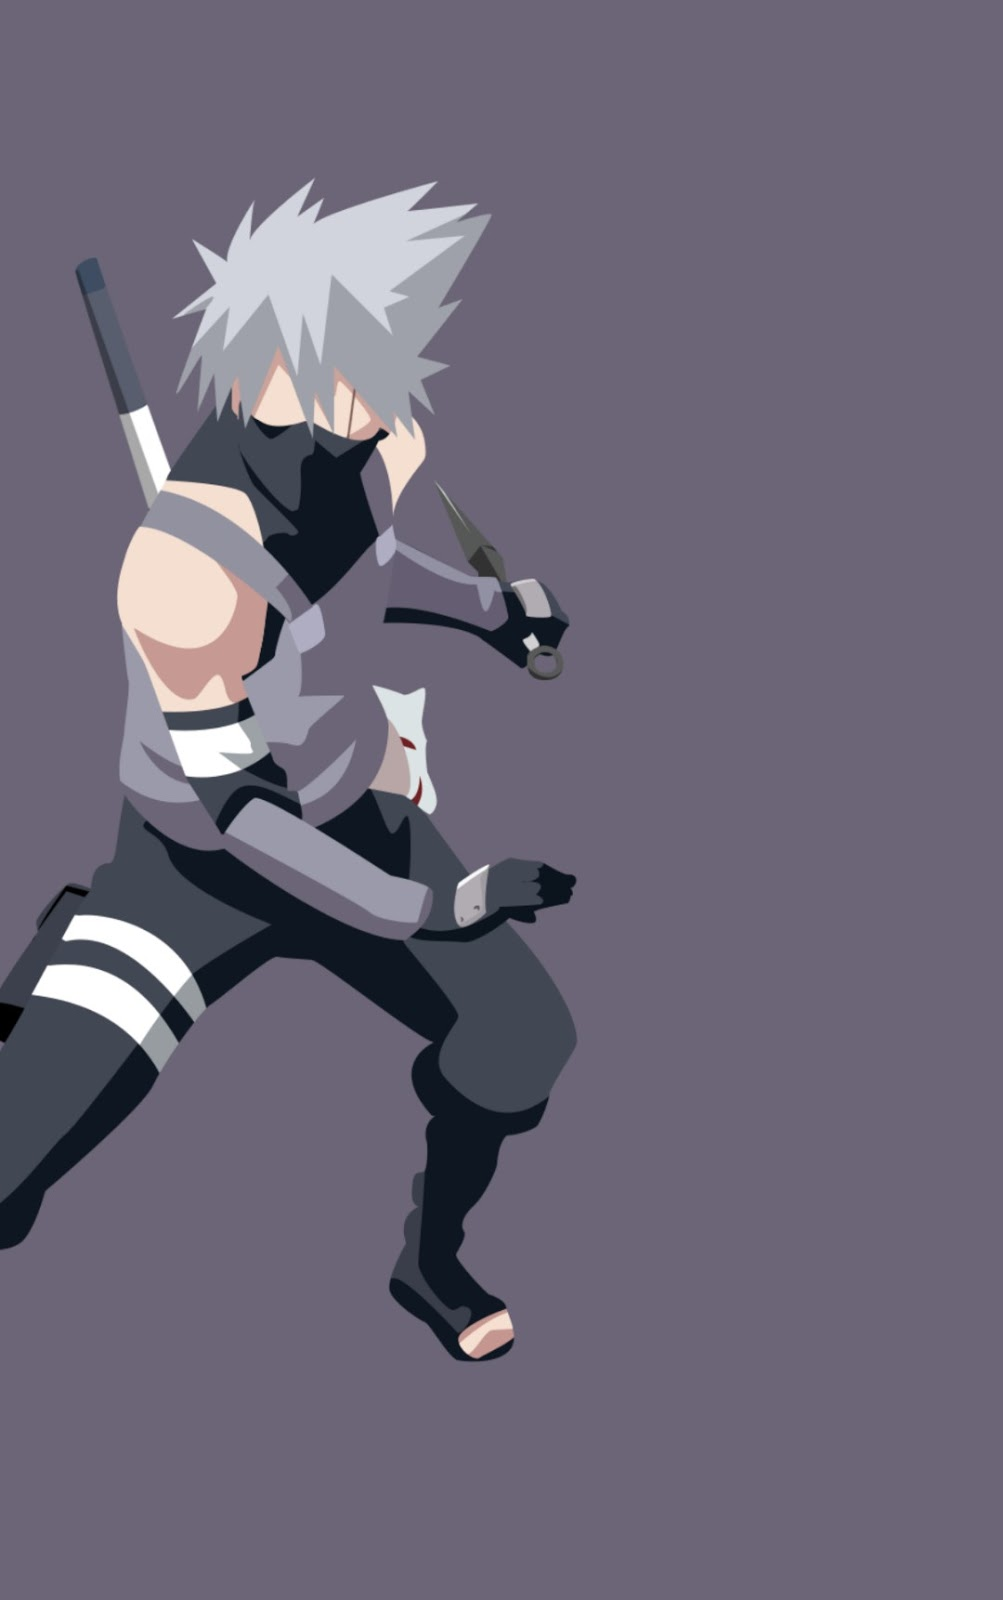 7 Download Wallpaper hatake kakashi vector untuk Android dan Whatsapp